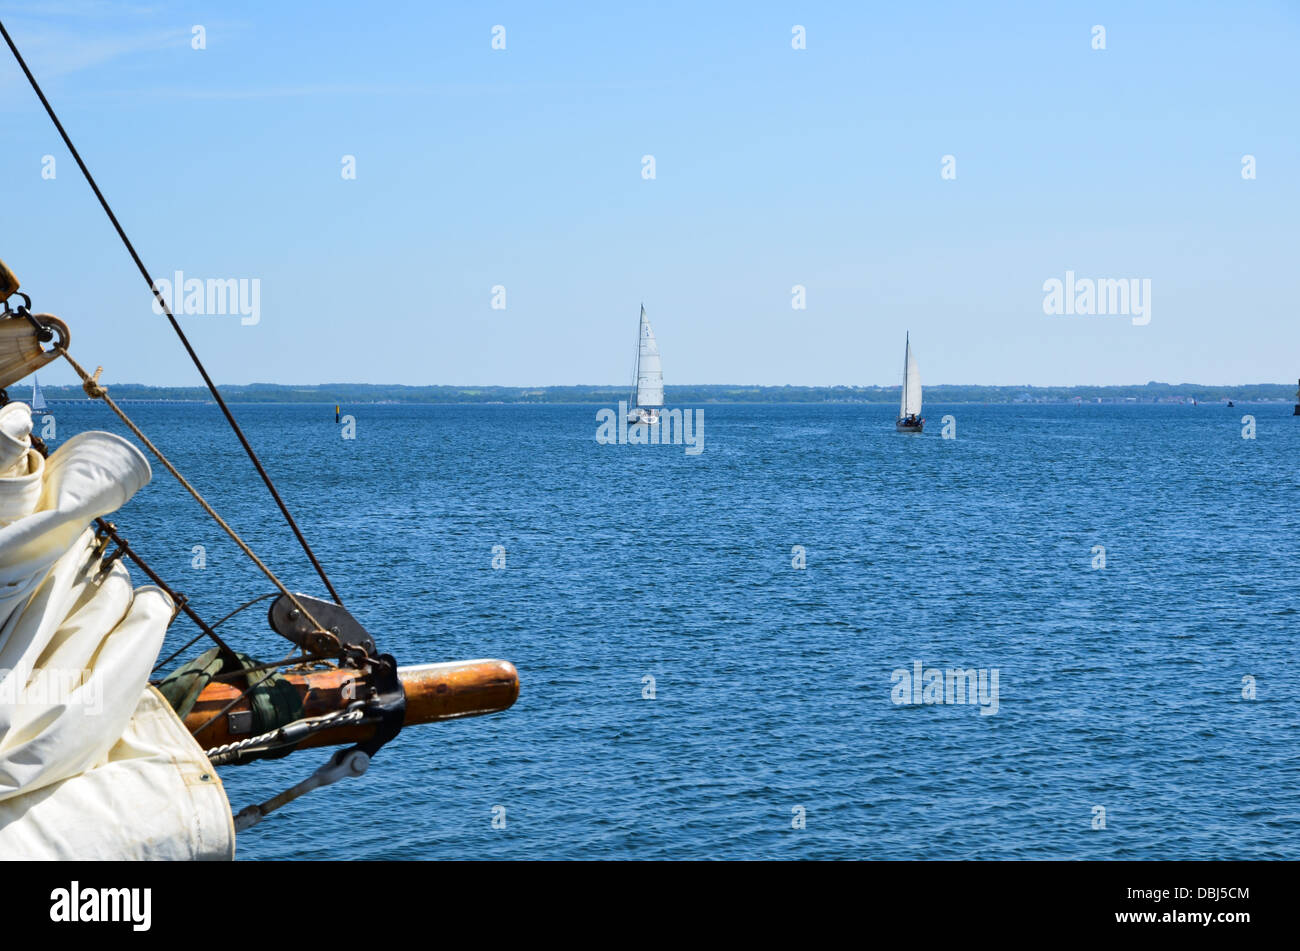 Sailing on the Baltic sea towards the island Oland in Sweden - Stock Image